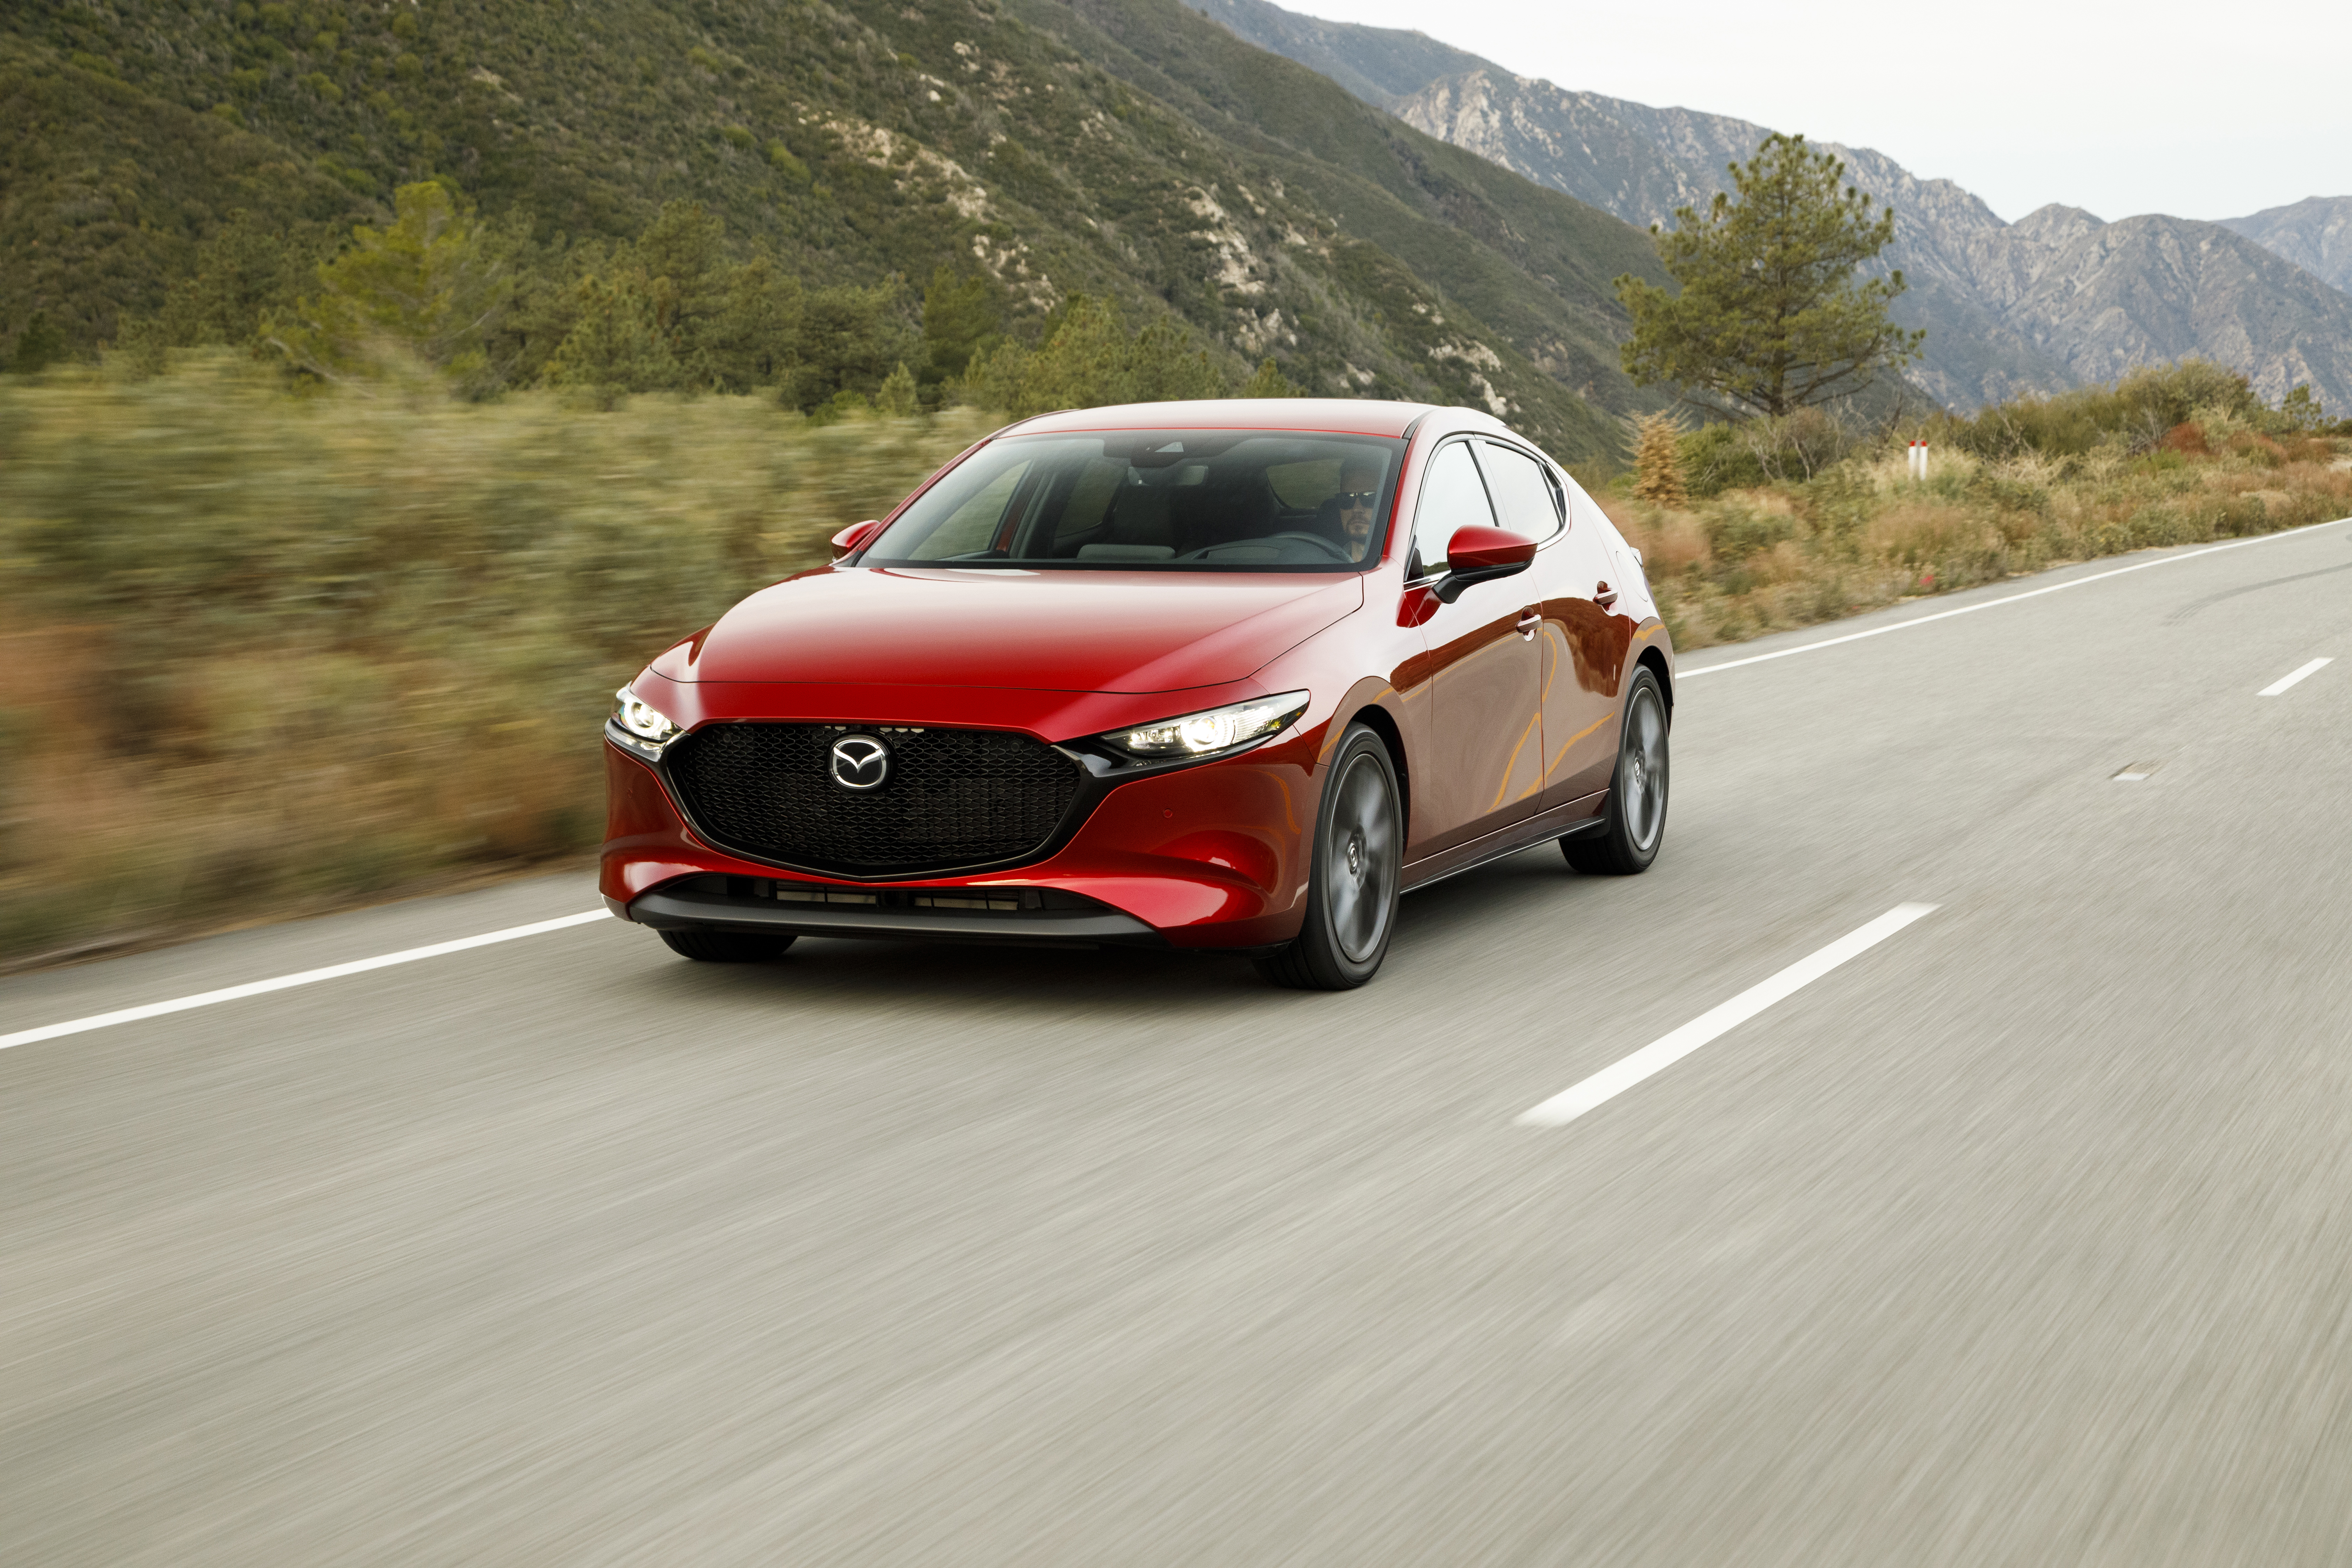 2019 Mazda3 Feels Looks Cl Above